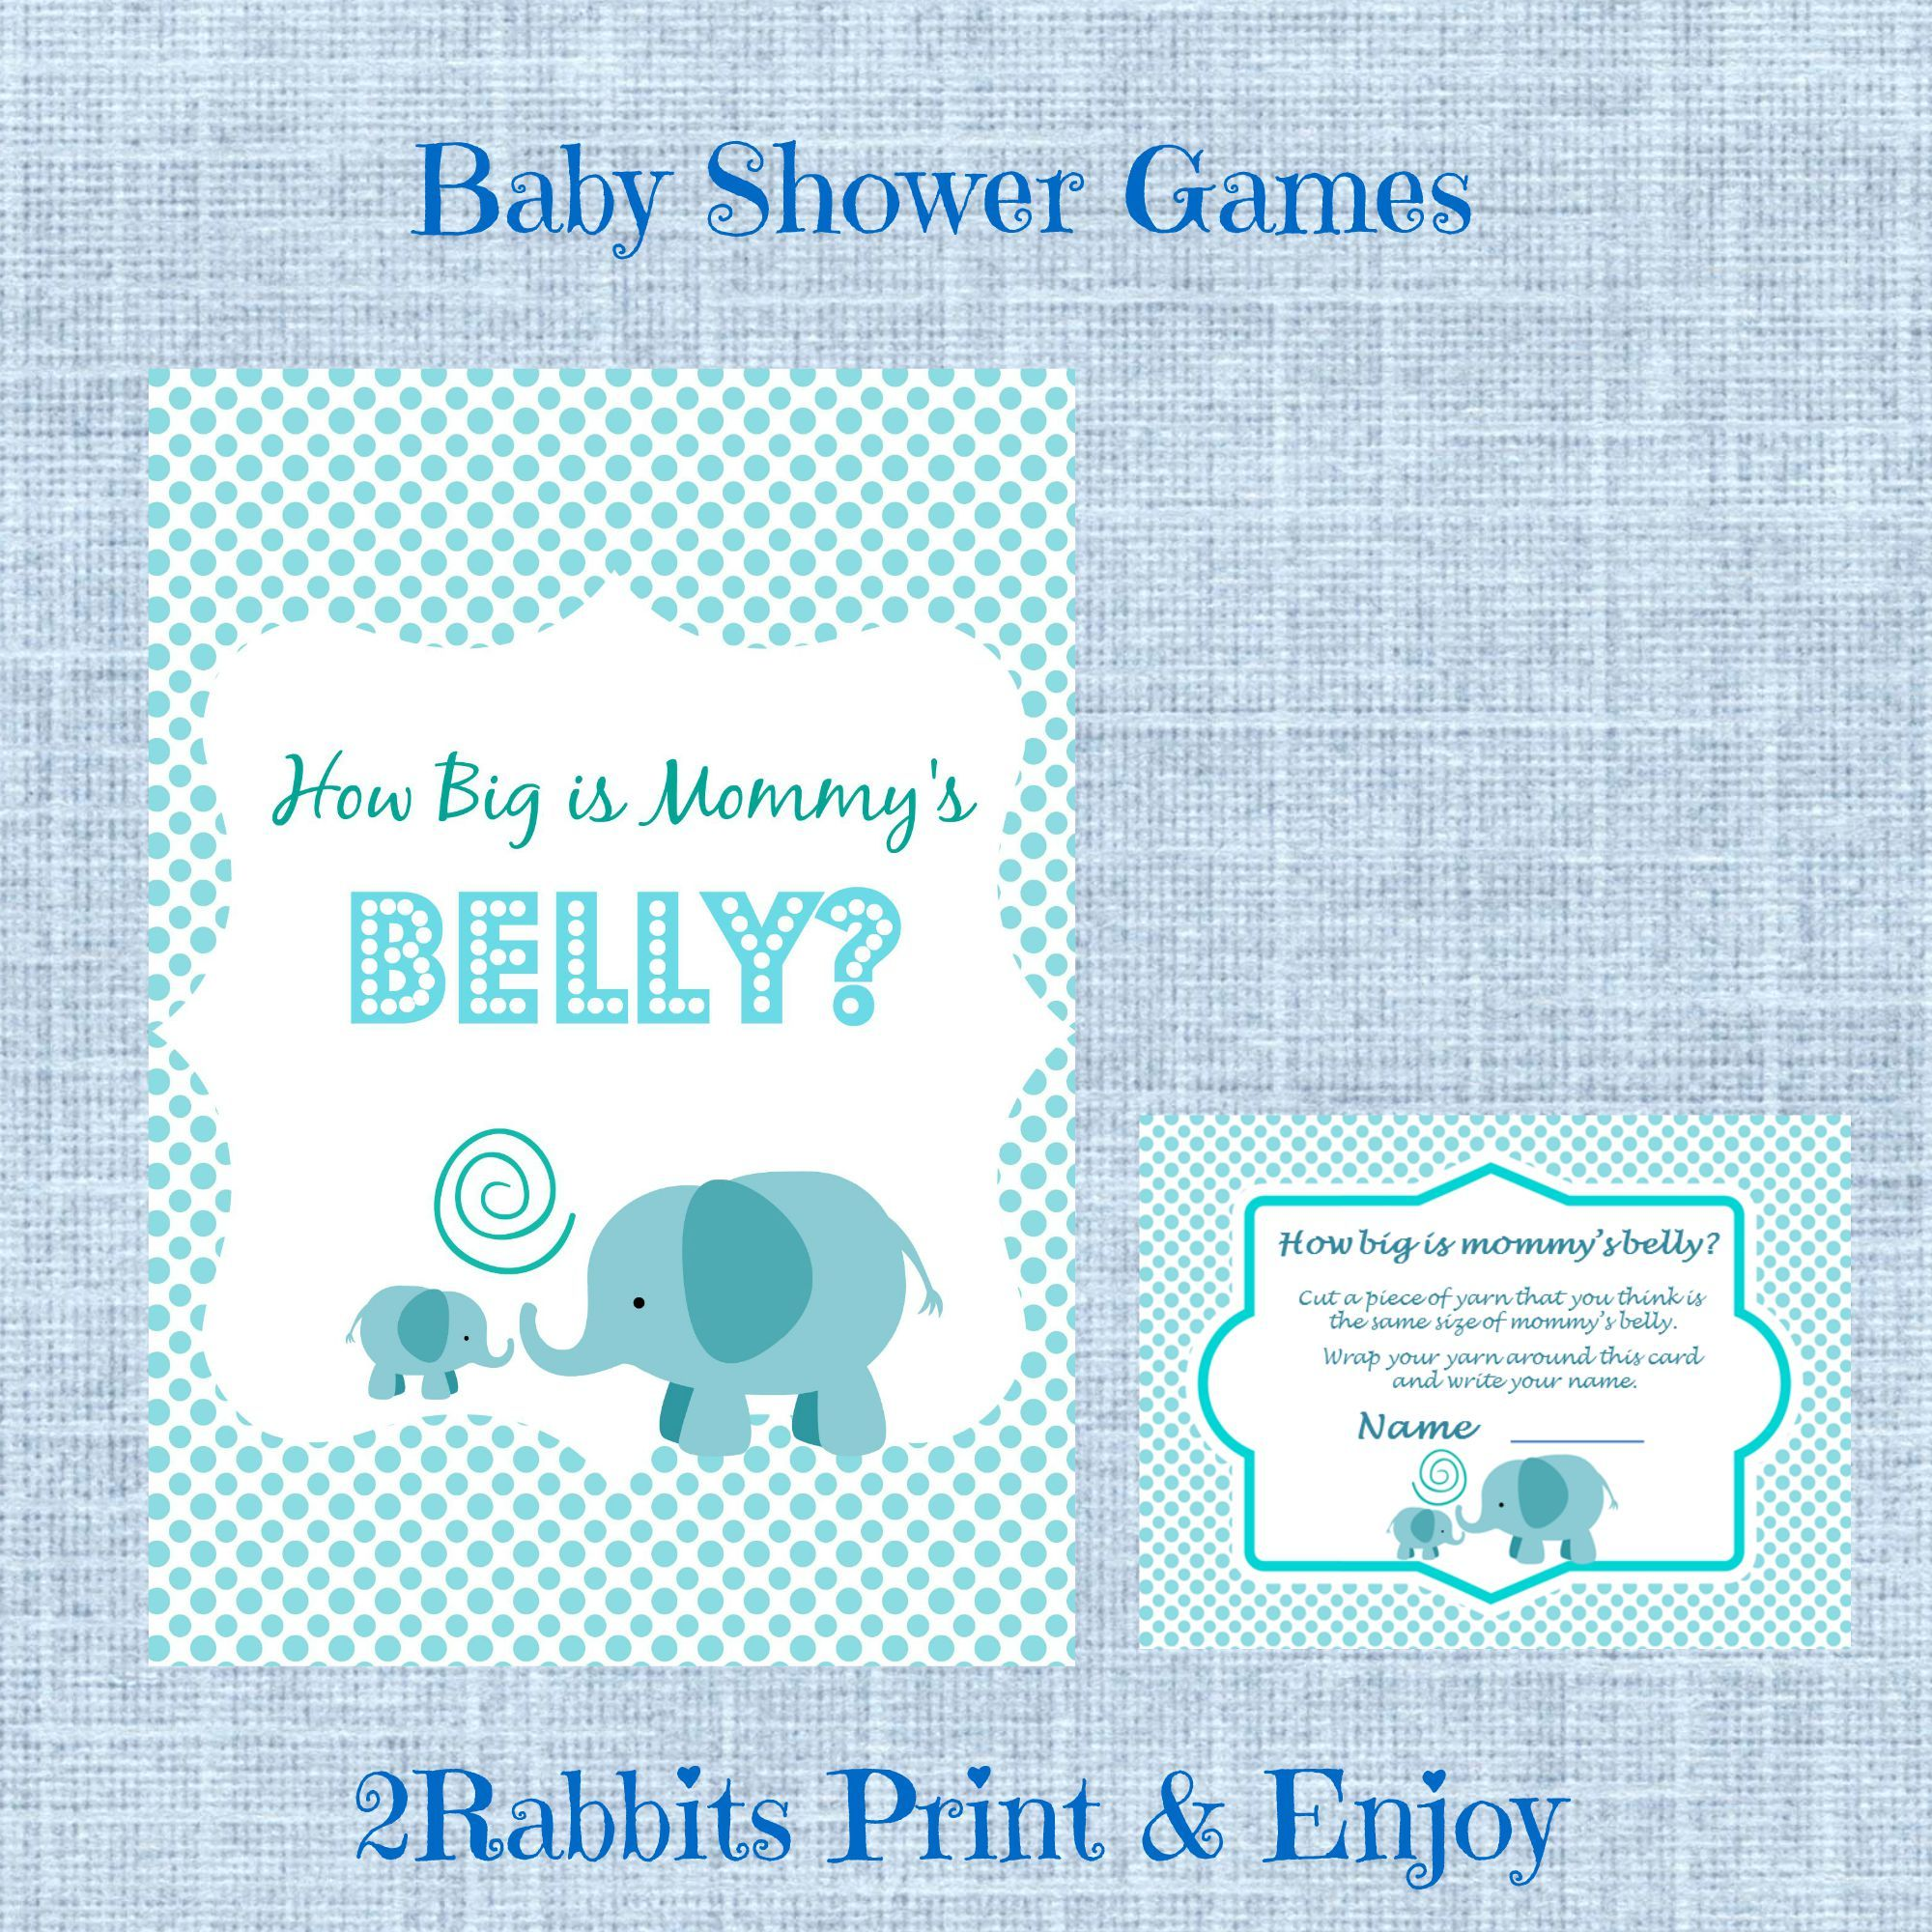 Fun Baby Shower Games - My Practical Baby Shower Guide | Pinterest ...